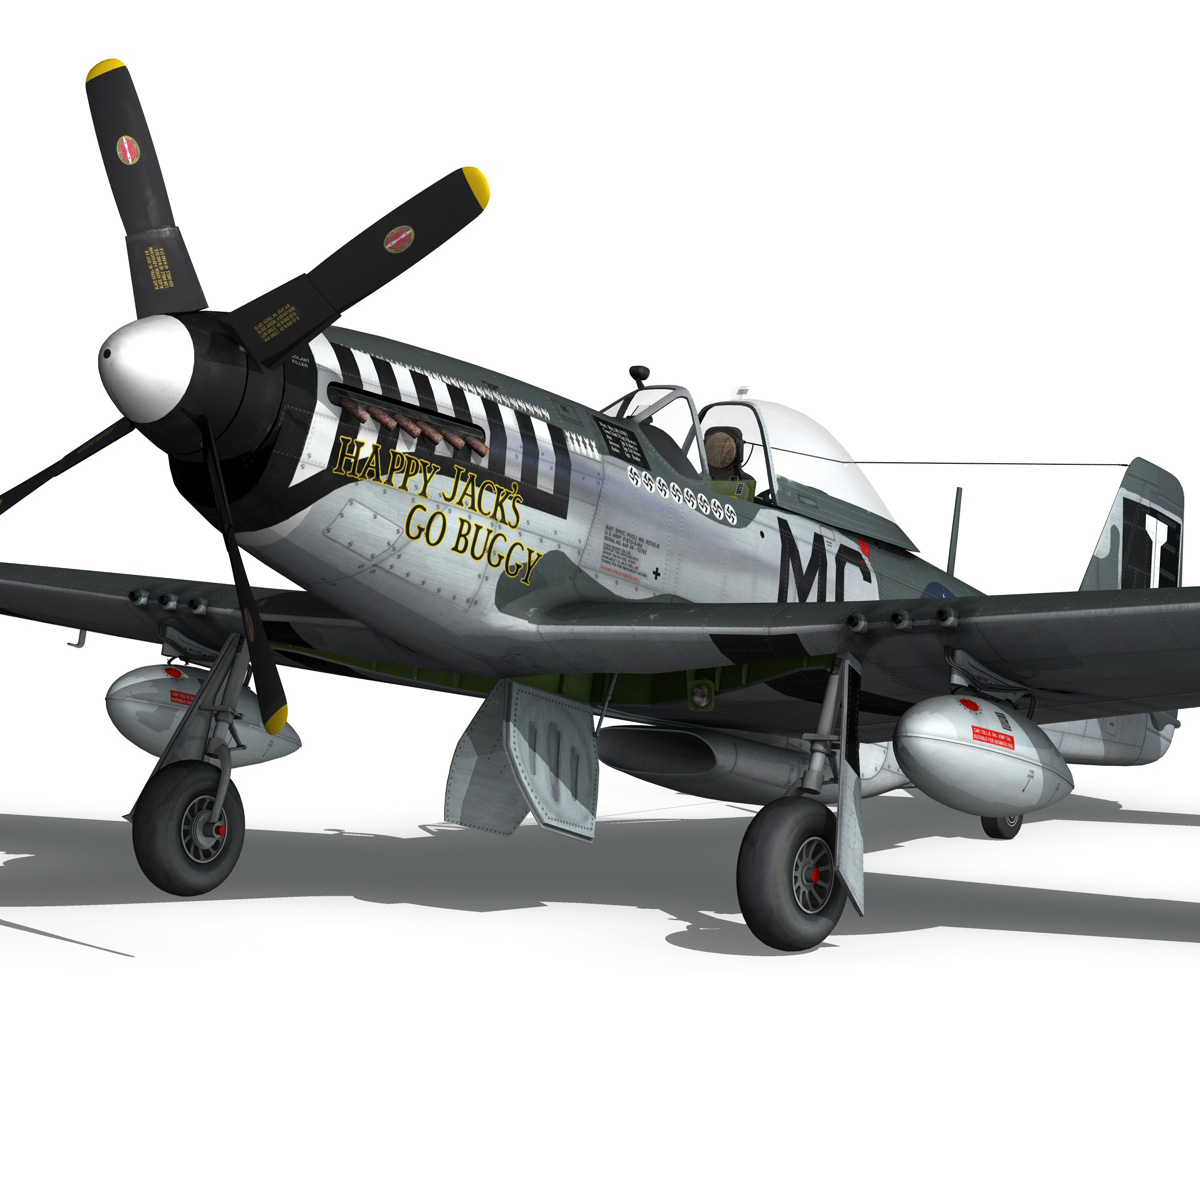 north american p-51 mustang – happy jacks go buggy 3d model fbx c4d lwo obj 280370